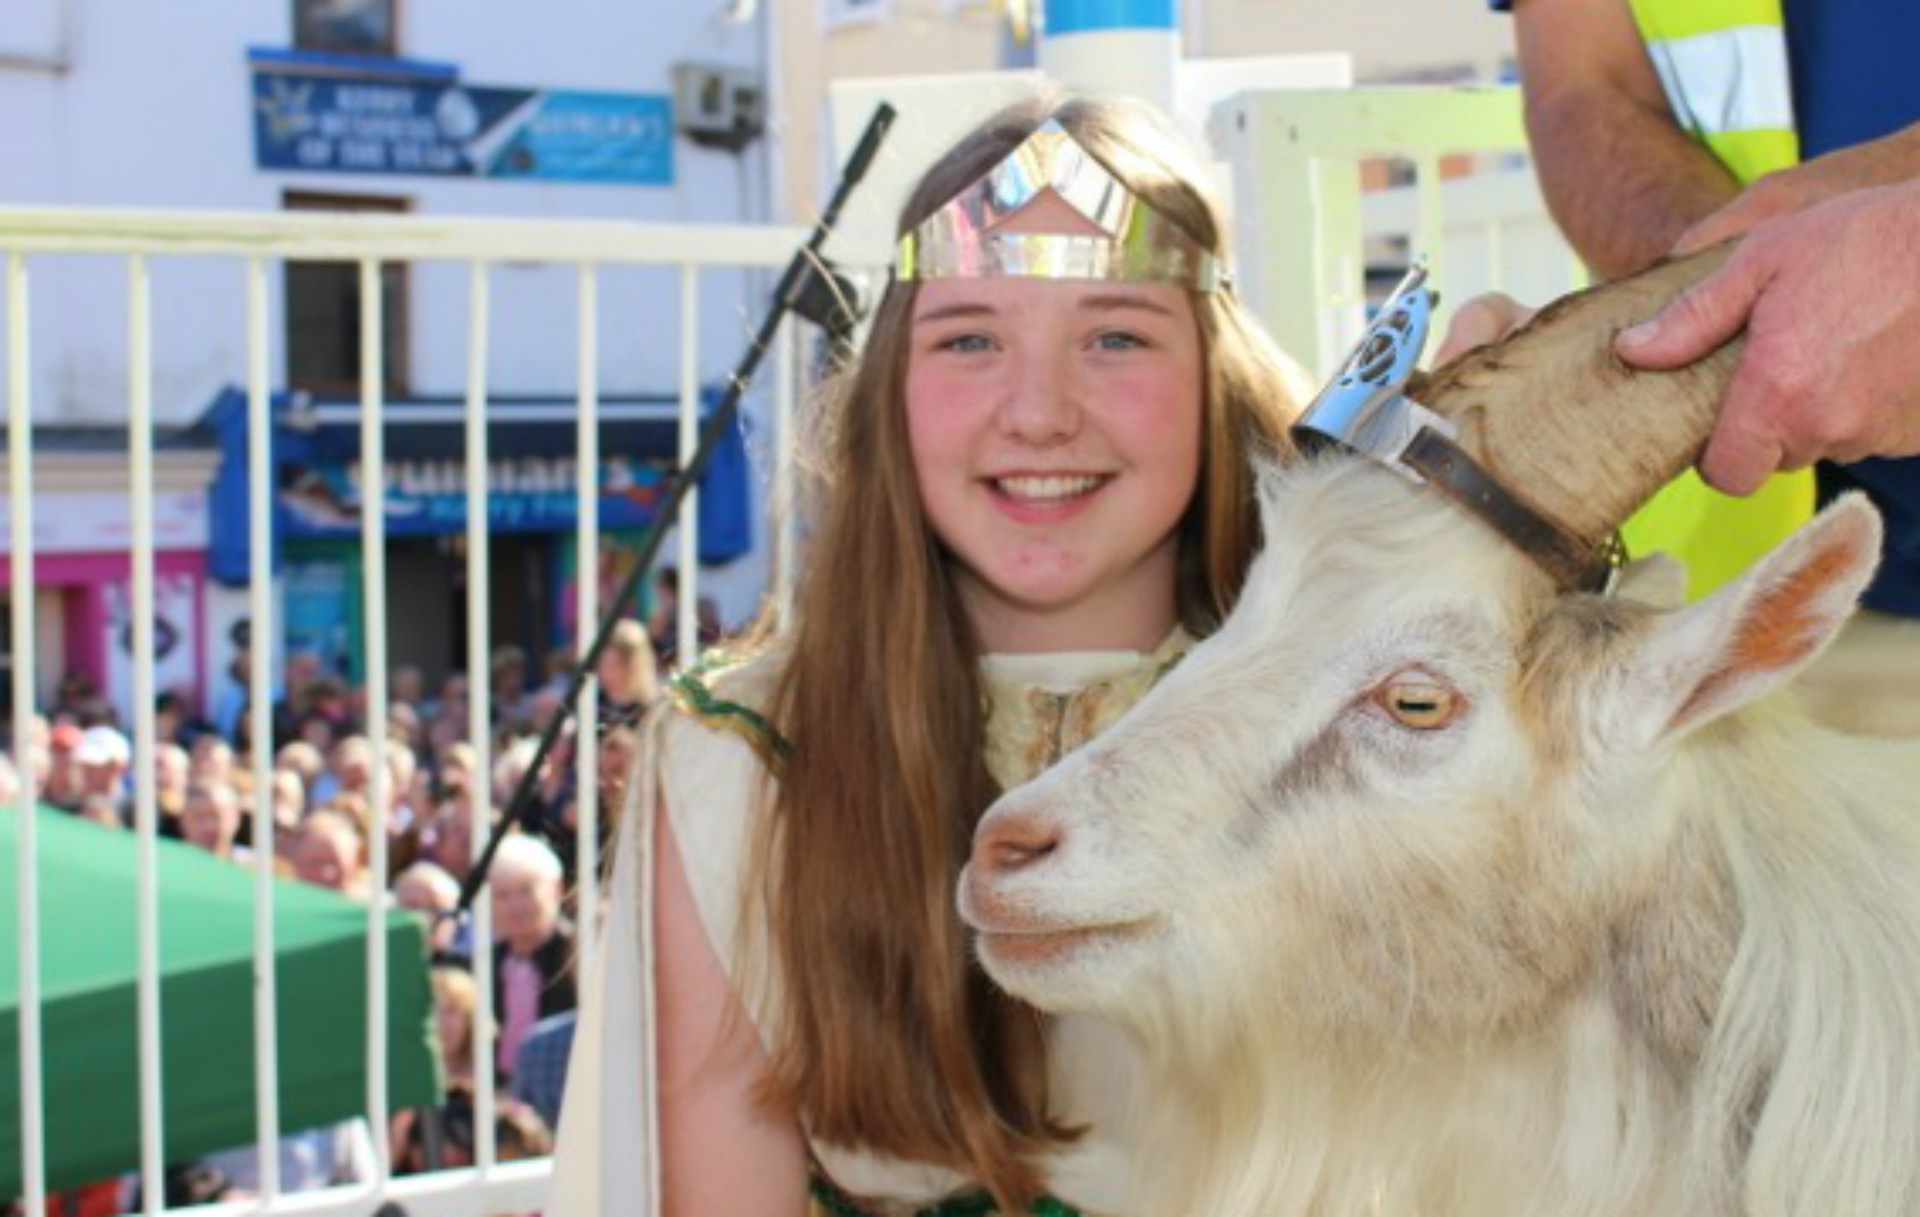 Queen of Puck 2015, Puck Fair, Irlanda, Eventrip